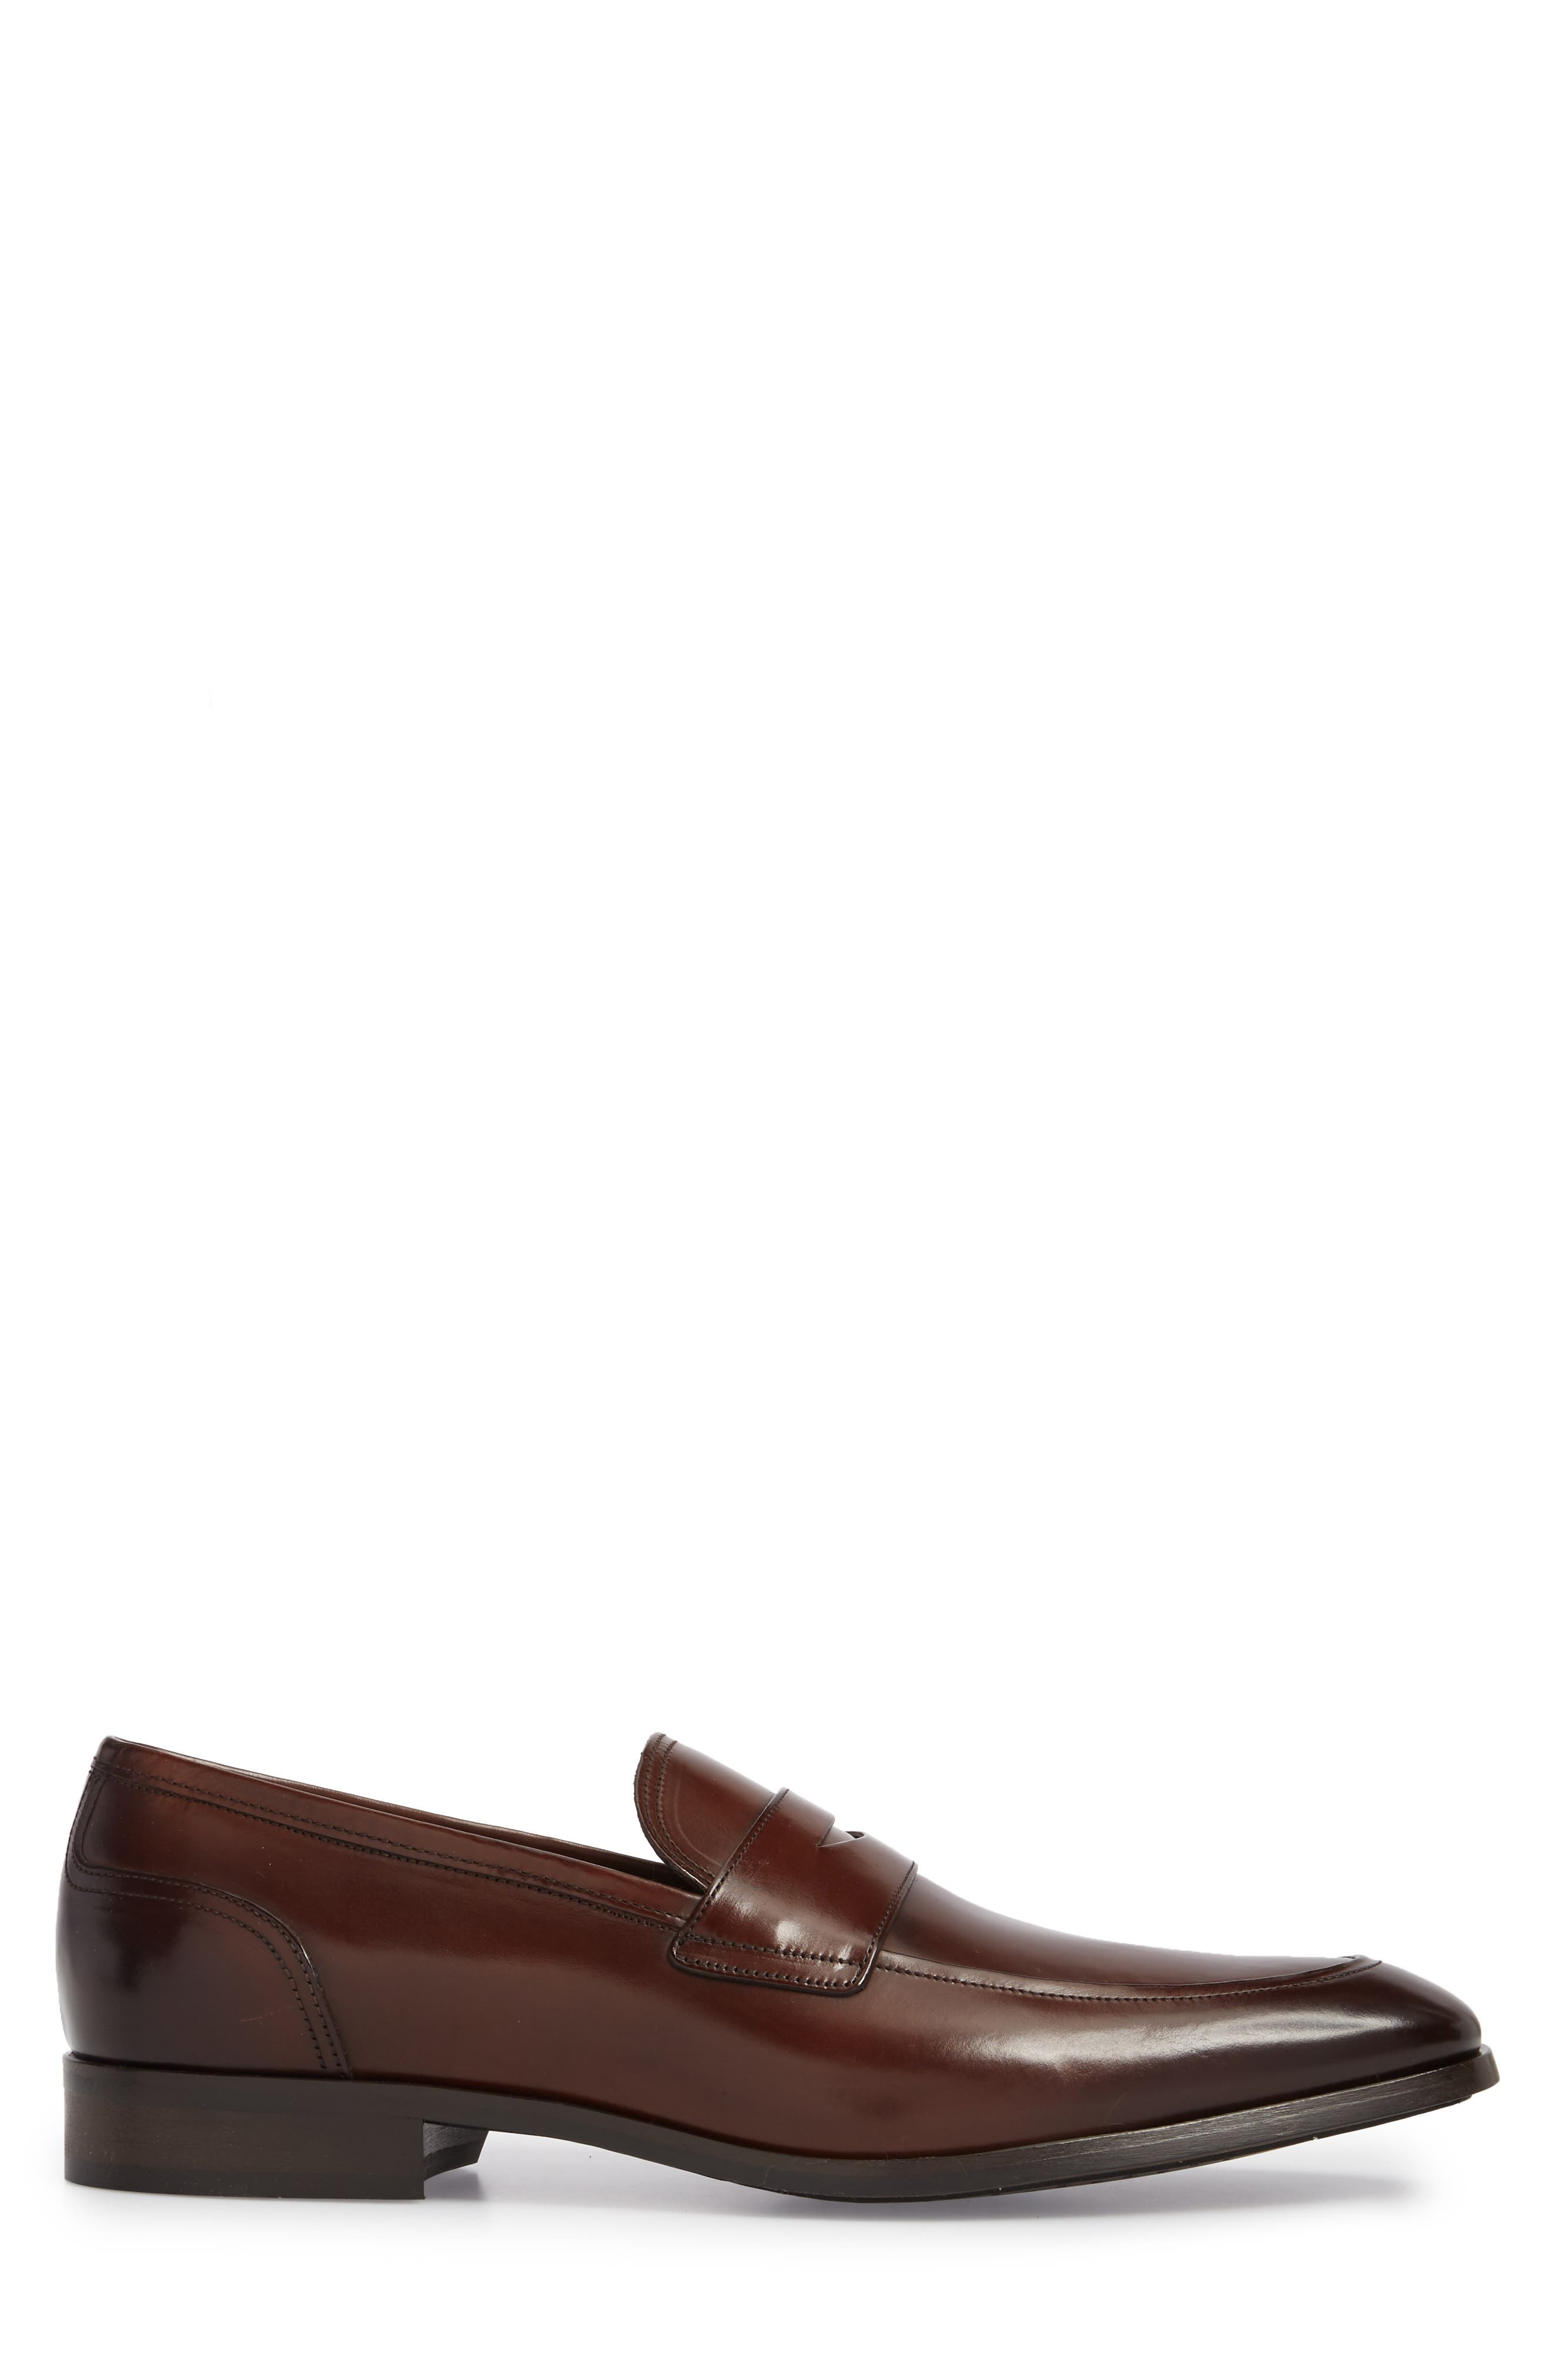 Deane Penny Loafer,                             Alternate thumbnail 3, color,                             Marrone Leather